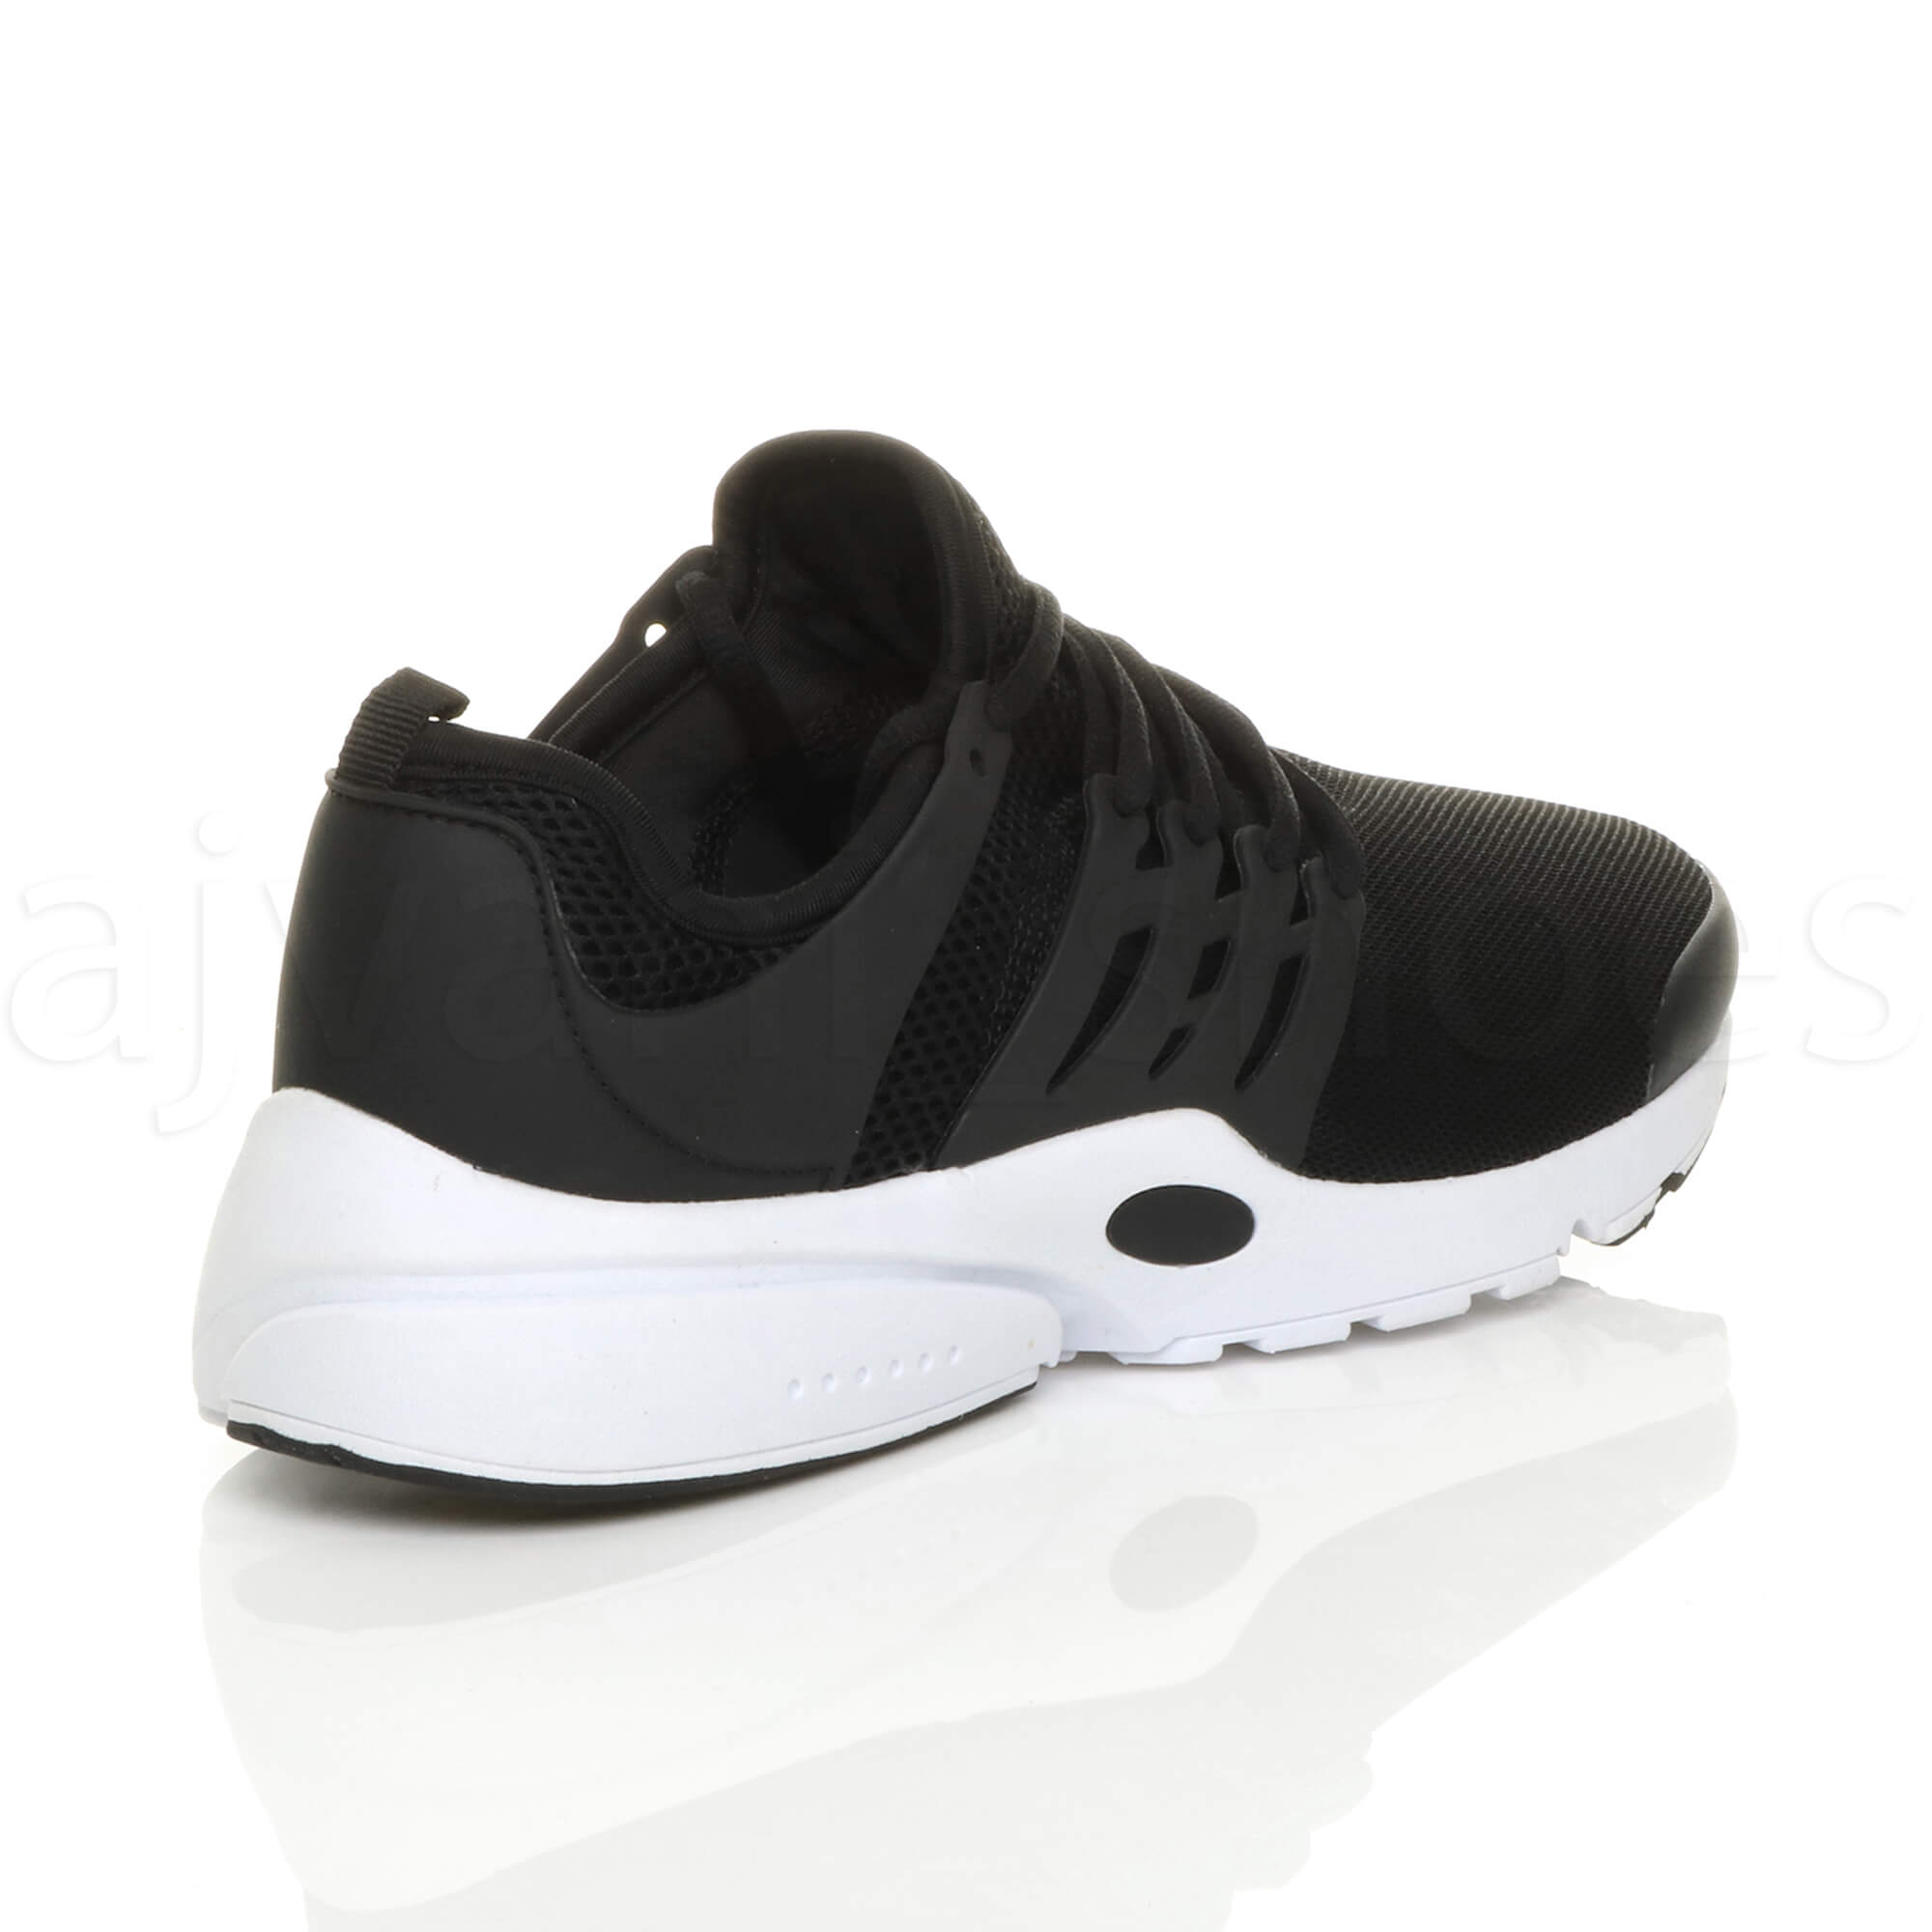 MENS-LACE-UP-SPORTS-GYM-FITNESS-RUNNING-FLEXIBLE-TRAINERS-CASUAL-SNEAKERS-SIZE thumbnail 13